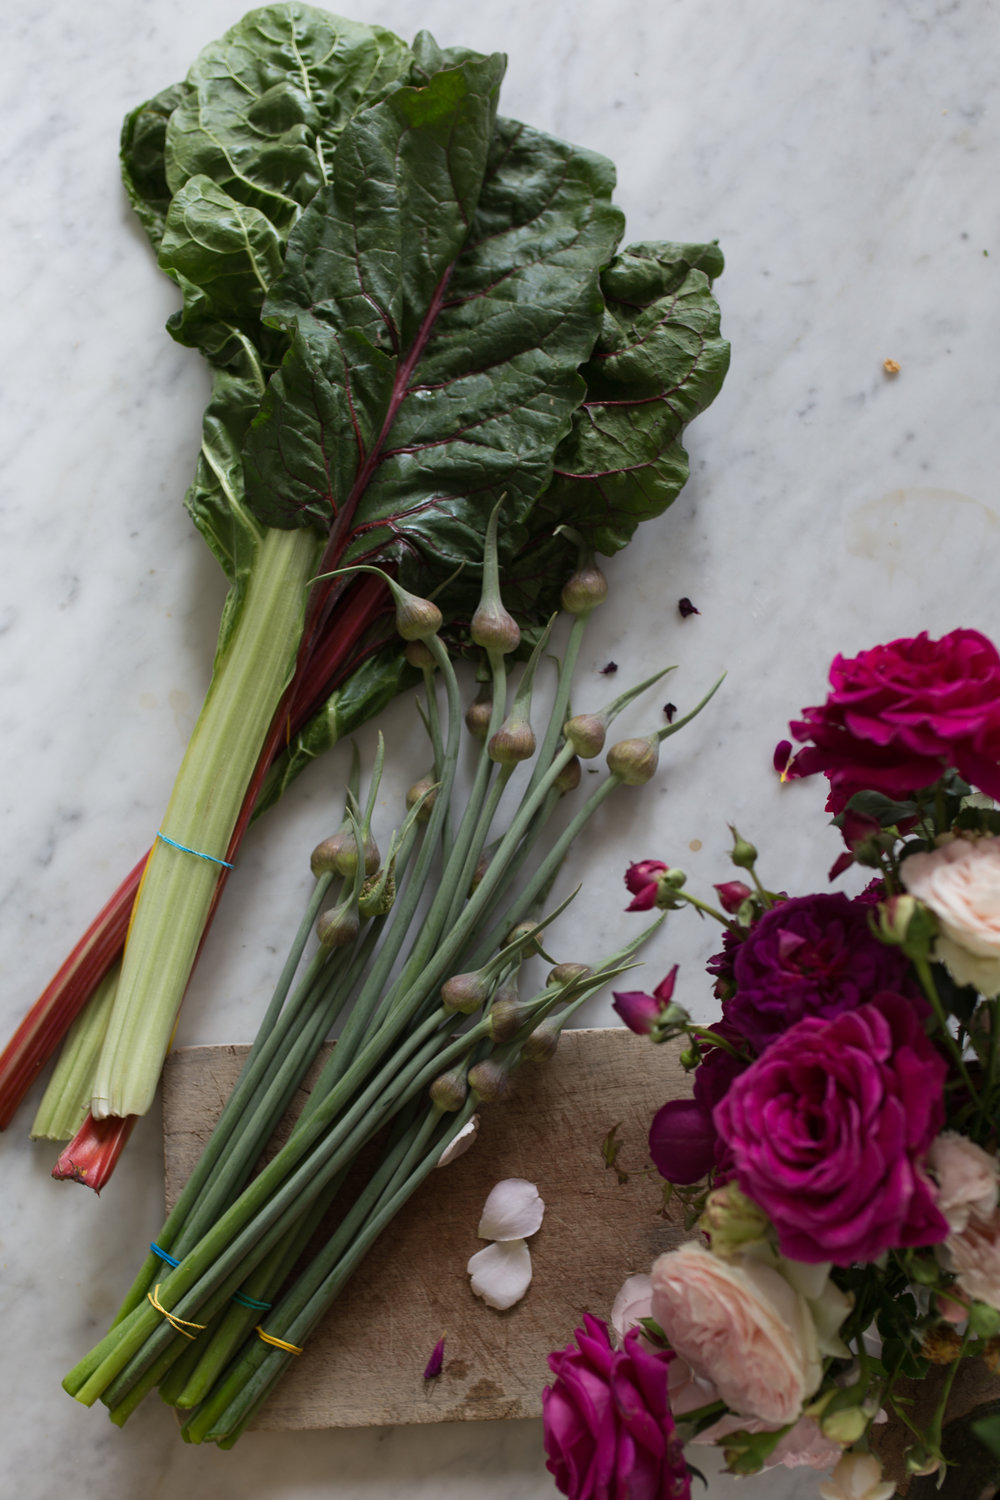 Garlic scapes and garden roses